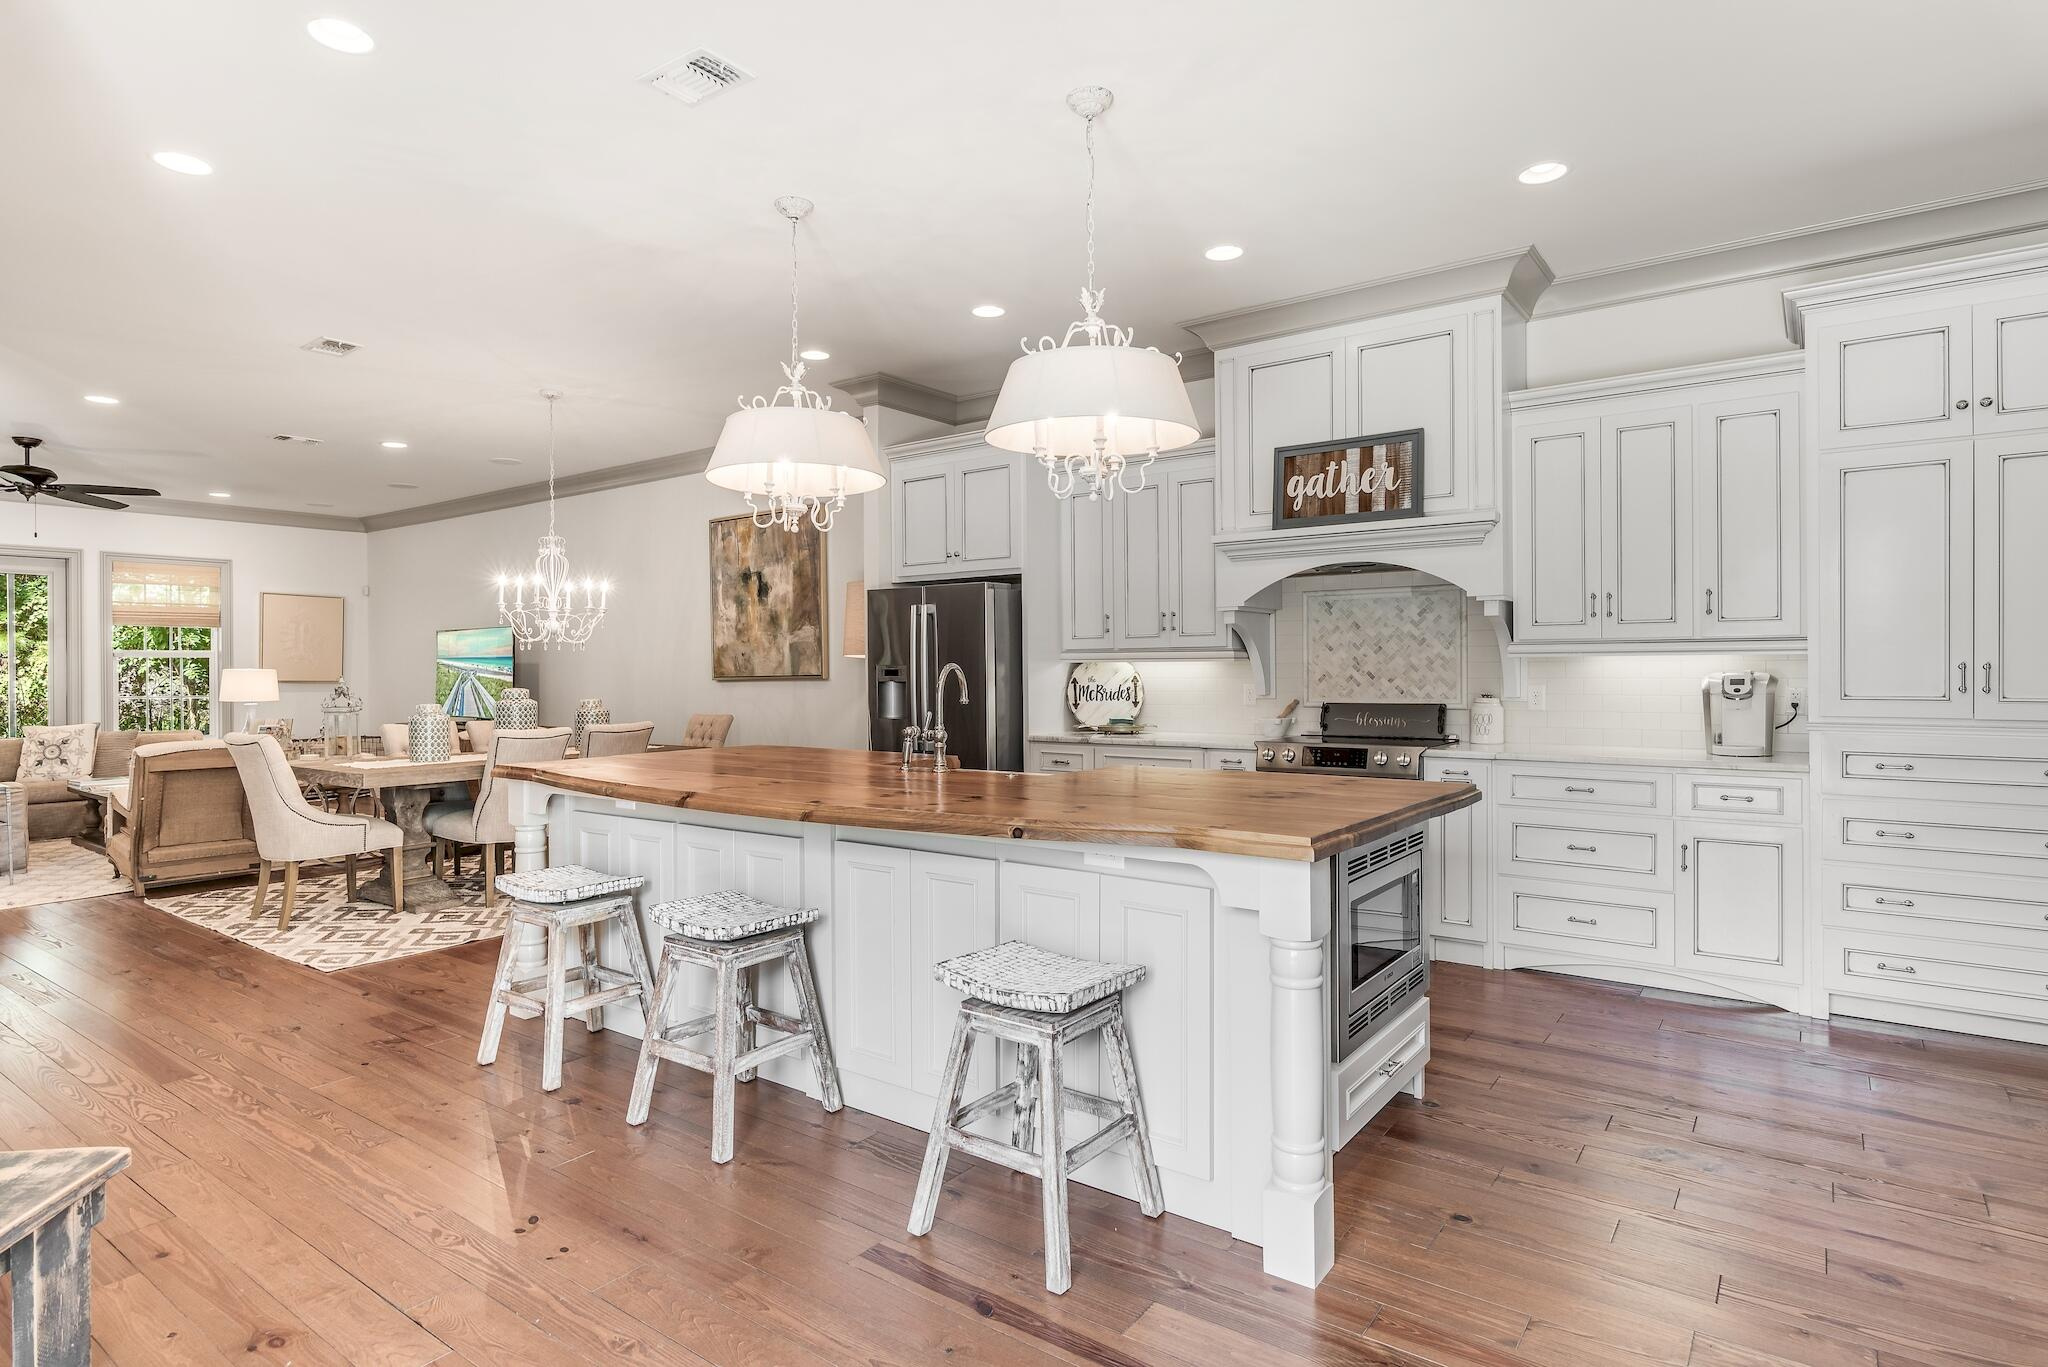 This Immaculate home was built by Legendary Home Builders in 2015. This is a one of a kind Villa that was custom built larger, with an open floor plan, bigger pool and full carriage house.  Destin Custom Home Builders takes prides in literally EVERY detail. This home has an exhaustive list of custom detail:Storm and Wind Impact Resistant Windows & Doors (150 Wind Loads)Insulated Garage DoorsFoam Spray Insulation in Roof for Superior Energy EfficiencyStainless Steel Screws, Nails, Flashing & StrapsFortified Gold Construction Inspection DesignationEnhanced savings on Homeowners' Insurance/YearTreated Plywood on Exterior WallsUpgraded Energy Smart WINK SystemsMonitor & Manage everything in your homeAll Showers have Schluter Waterproofing Specifically Designed to Maintain Integrity & Durability Custom Solid Wood Cabinets & Cabinet Doors All Interior walls insulated for Soundproofing Moisture Resistant Sheetrock used in all bathrooms Sound Insulated A/C systems Solid Core Interior Doors. The main house features 2 large bedrooms each with their own bathroom and generous walk-in closet space with custom shelving for an organized lifestyle. The study overlooks the courtyard and pool, which could easily be another bedroom or home office. The kitchen is open to the dining and great room and boasts 10 foot ceilings and lots of natural light. The design elements chosen by a professional designer include custom white cabinets, gorgeous white granite with hints of grey, solid wood flooring, and bathrooms decked out in the latest tile designs. The guest house is equipped with the same attention to detail as the main house and features a bedroom, bathroom, and full kitchen. This guest house can serve many different needs such as; a space for visiting friends and family or even a place for full time help to live. These are just a few of the things you can expect to see in this new home. I look forward to taking you on a tour.